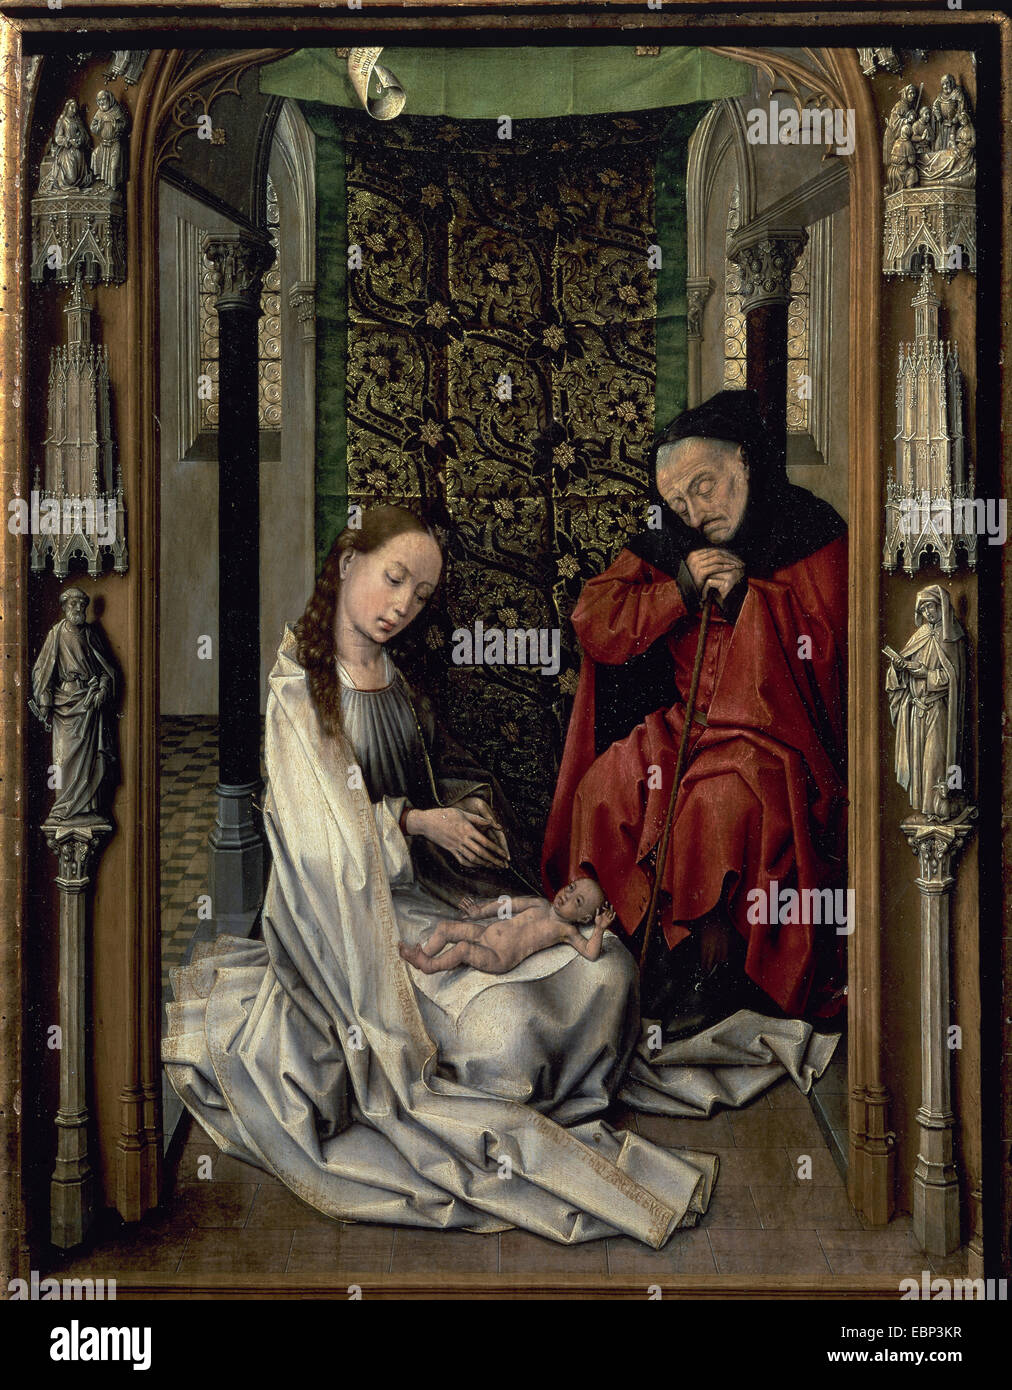 Gothic Art Miraflores Altarpiece Panel By Early Netherlandish Painter Rogier Van Der Weyden